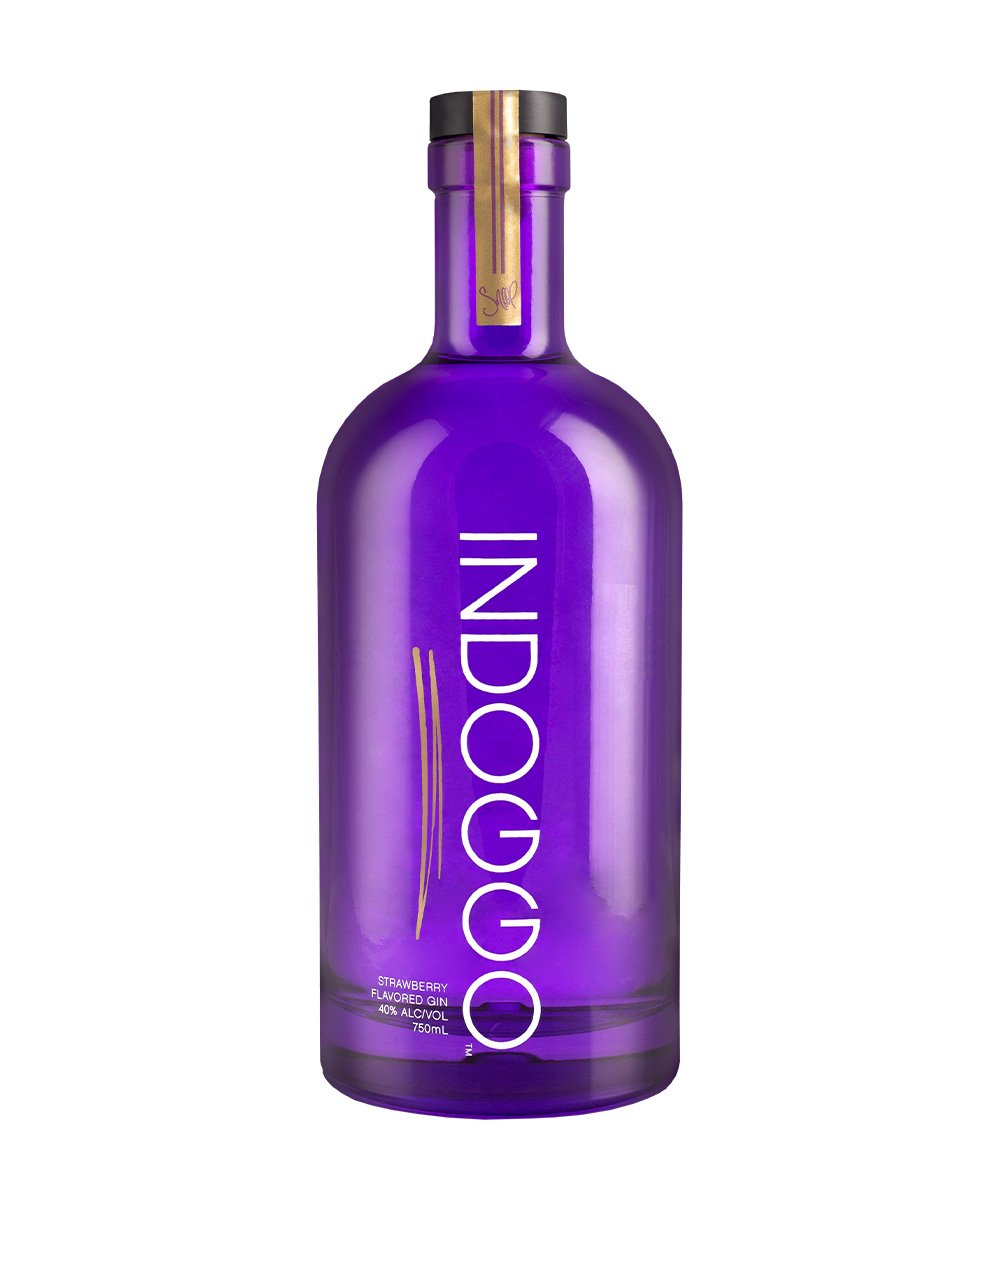 Indoggo Gin 750ml